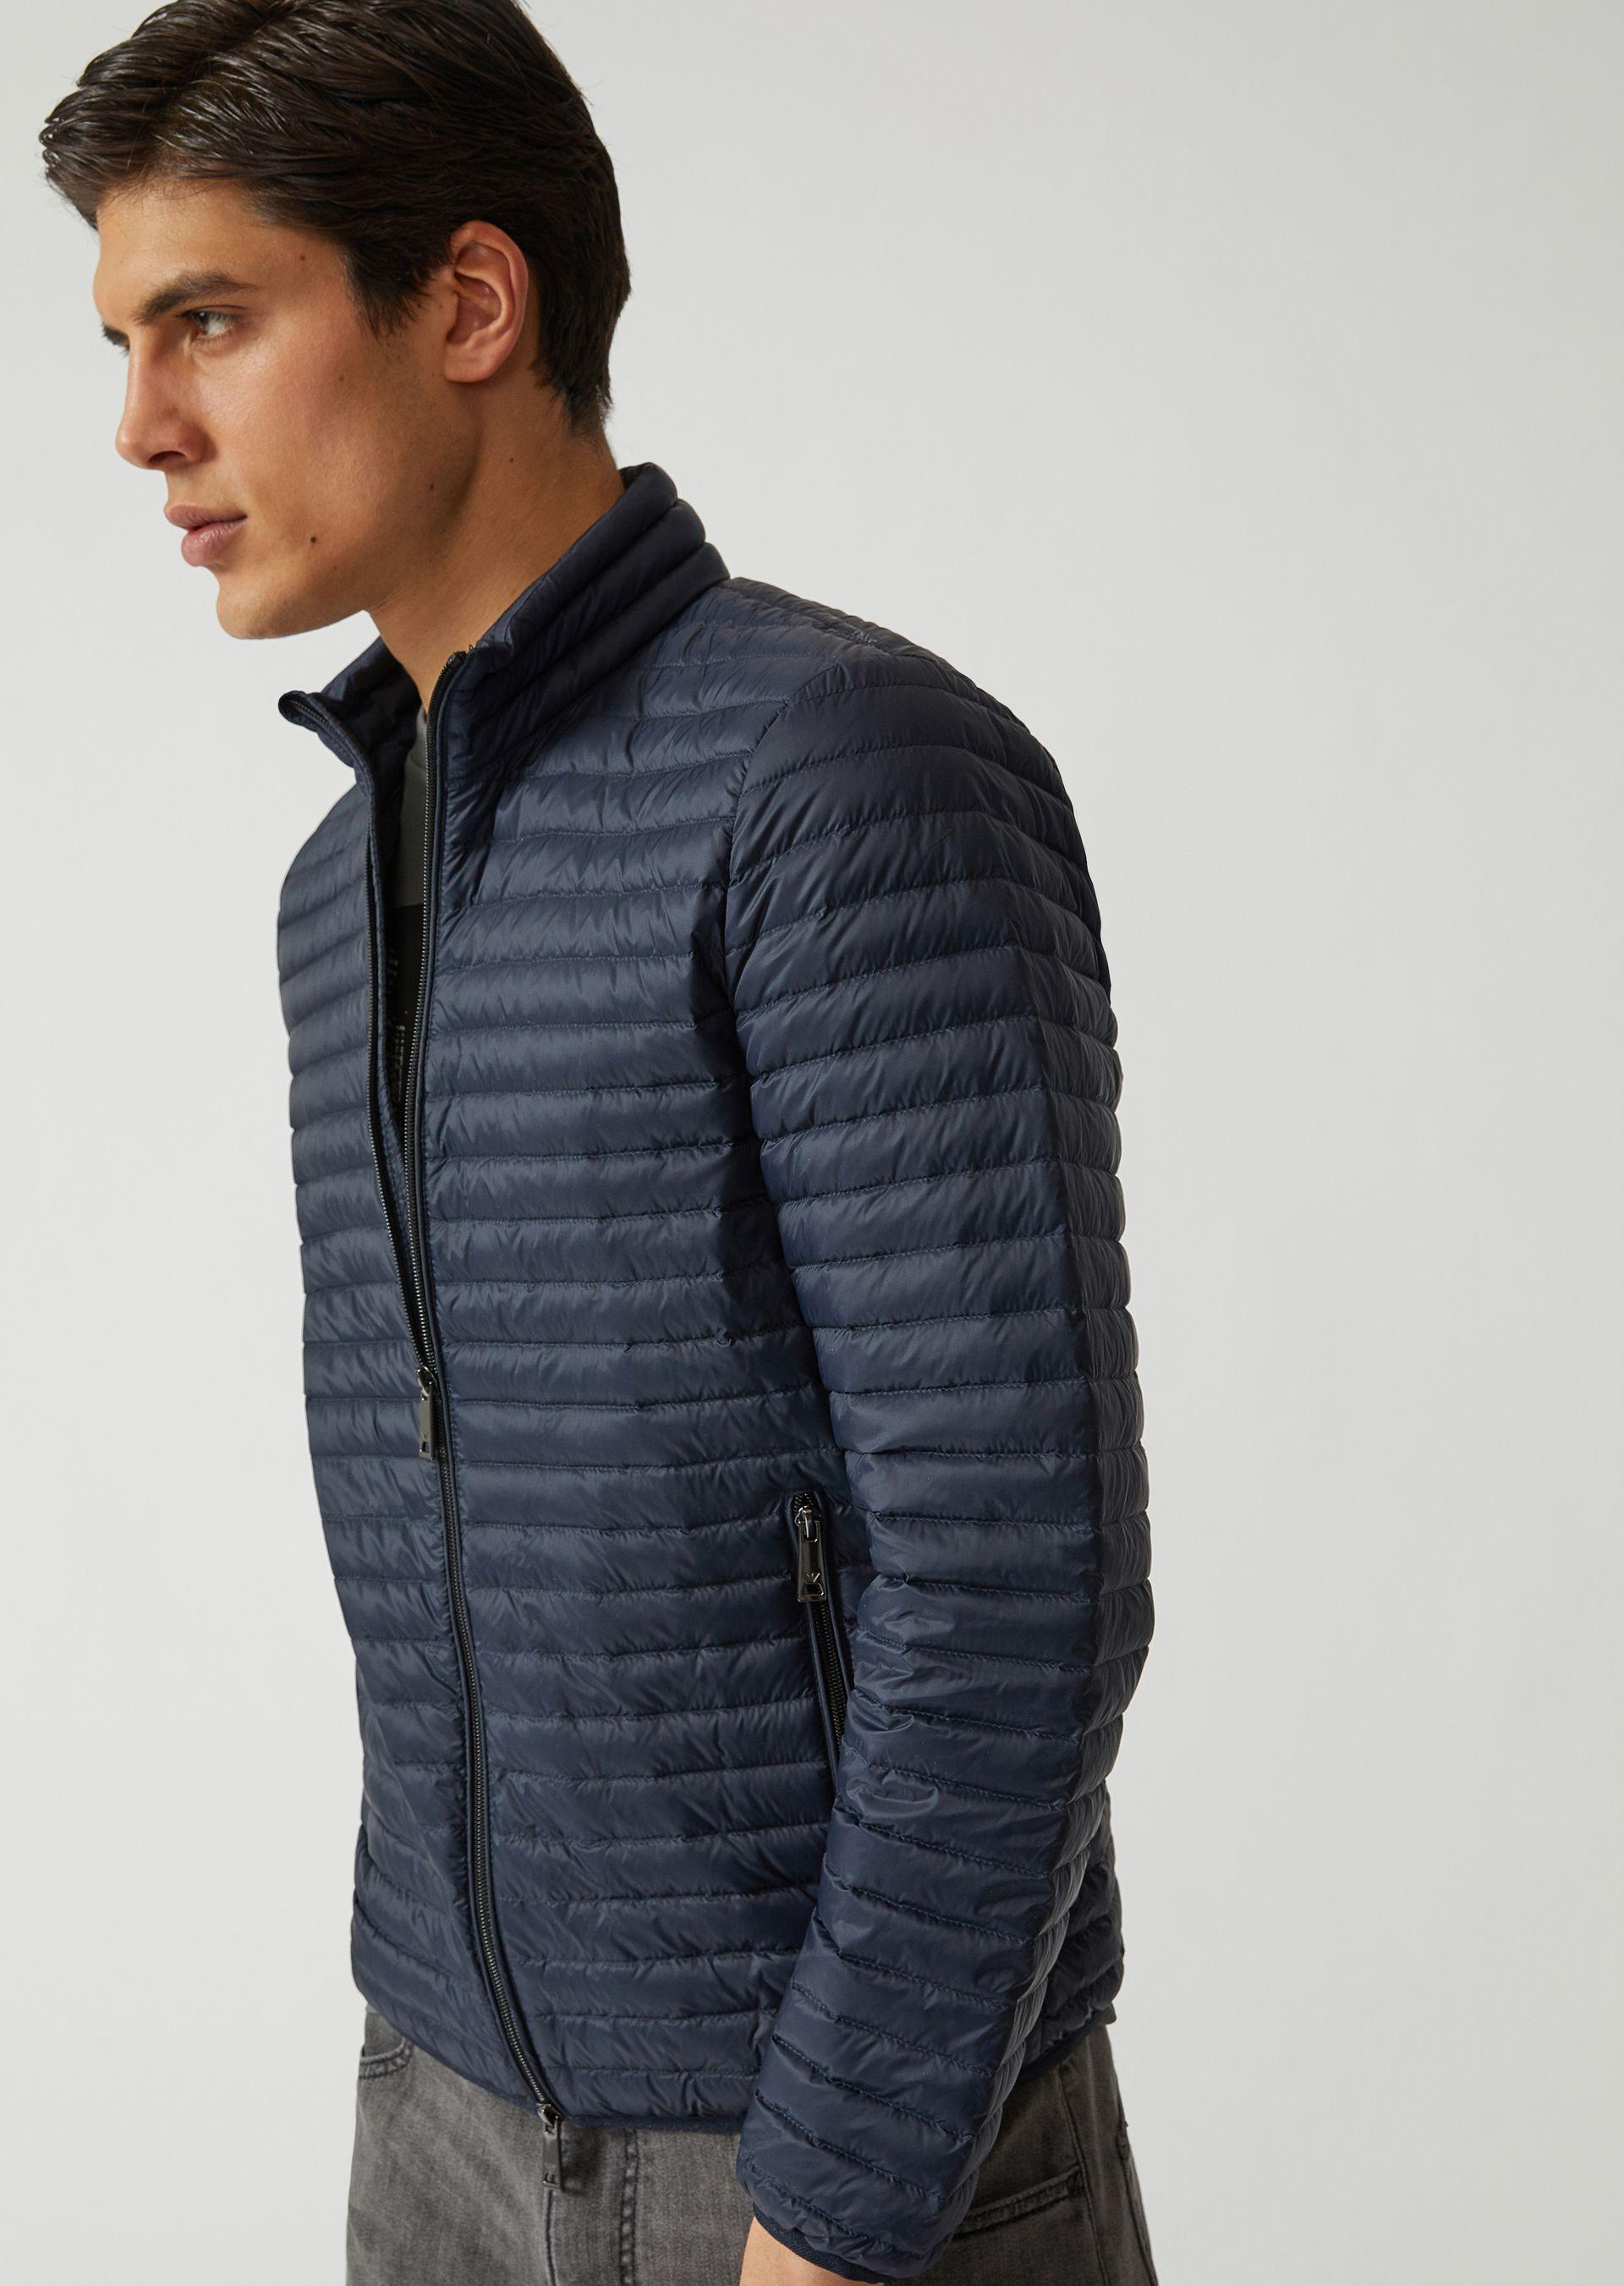 Emporio Armani Down Jackets - Item 41825145 In Midnight Blue